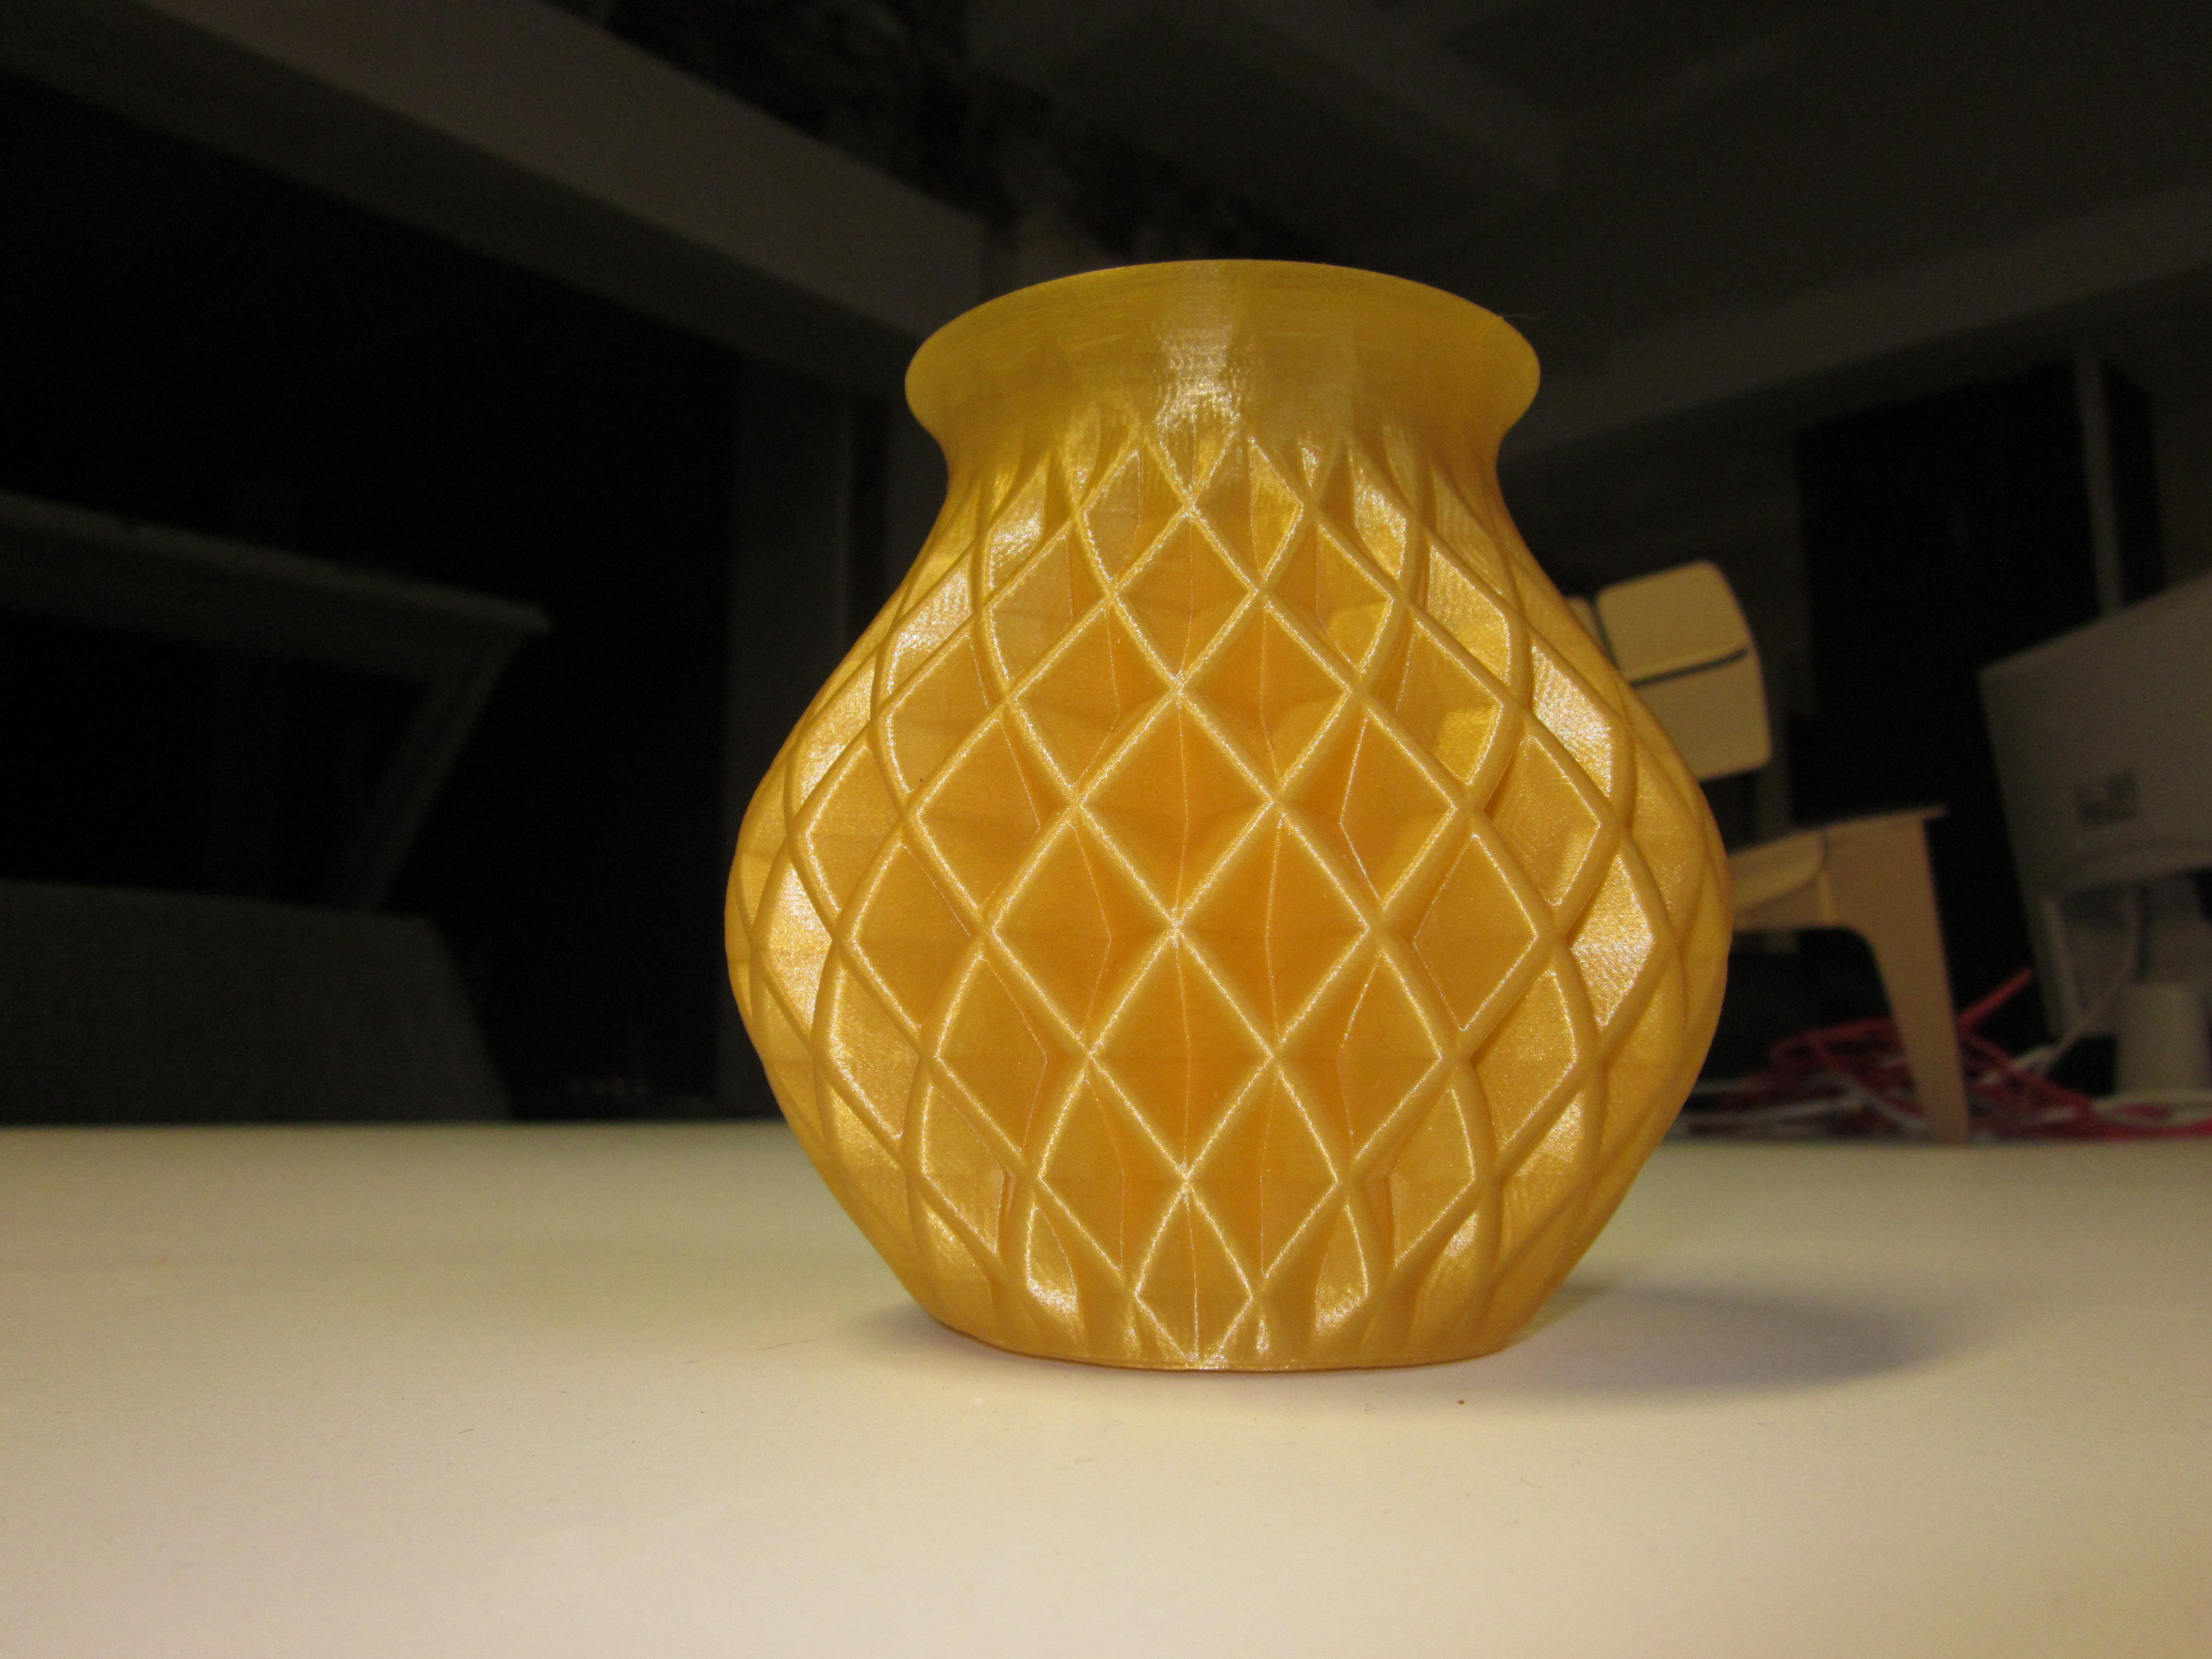 yellow pottery vase of double twisted vase by fablabmaastricht thingiverse intended for by fablabmaastricht dec 10 2012 view original